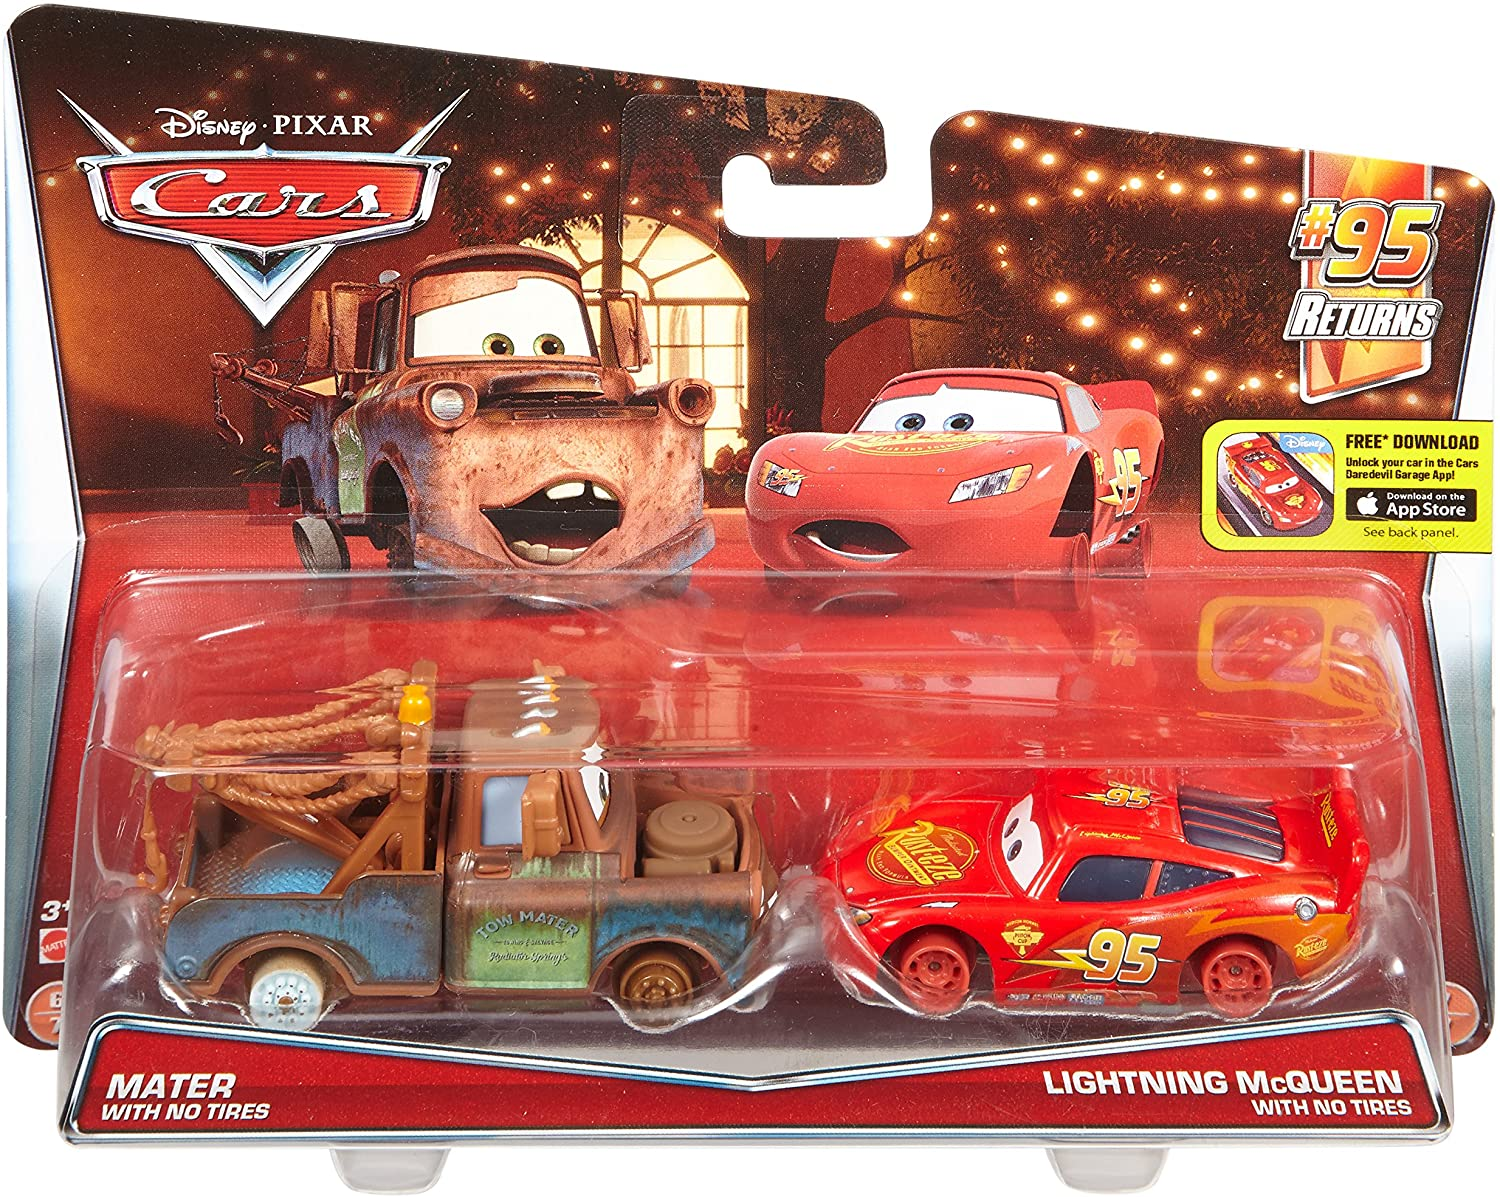 Amazon Com Disney Pixar Cars Diecast Character Car 2 Pack Mater With No Tires Lightning Mcqueen With No Tires Toys Games